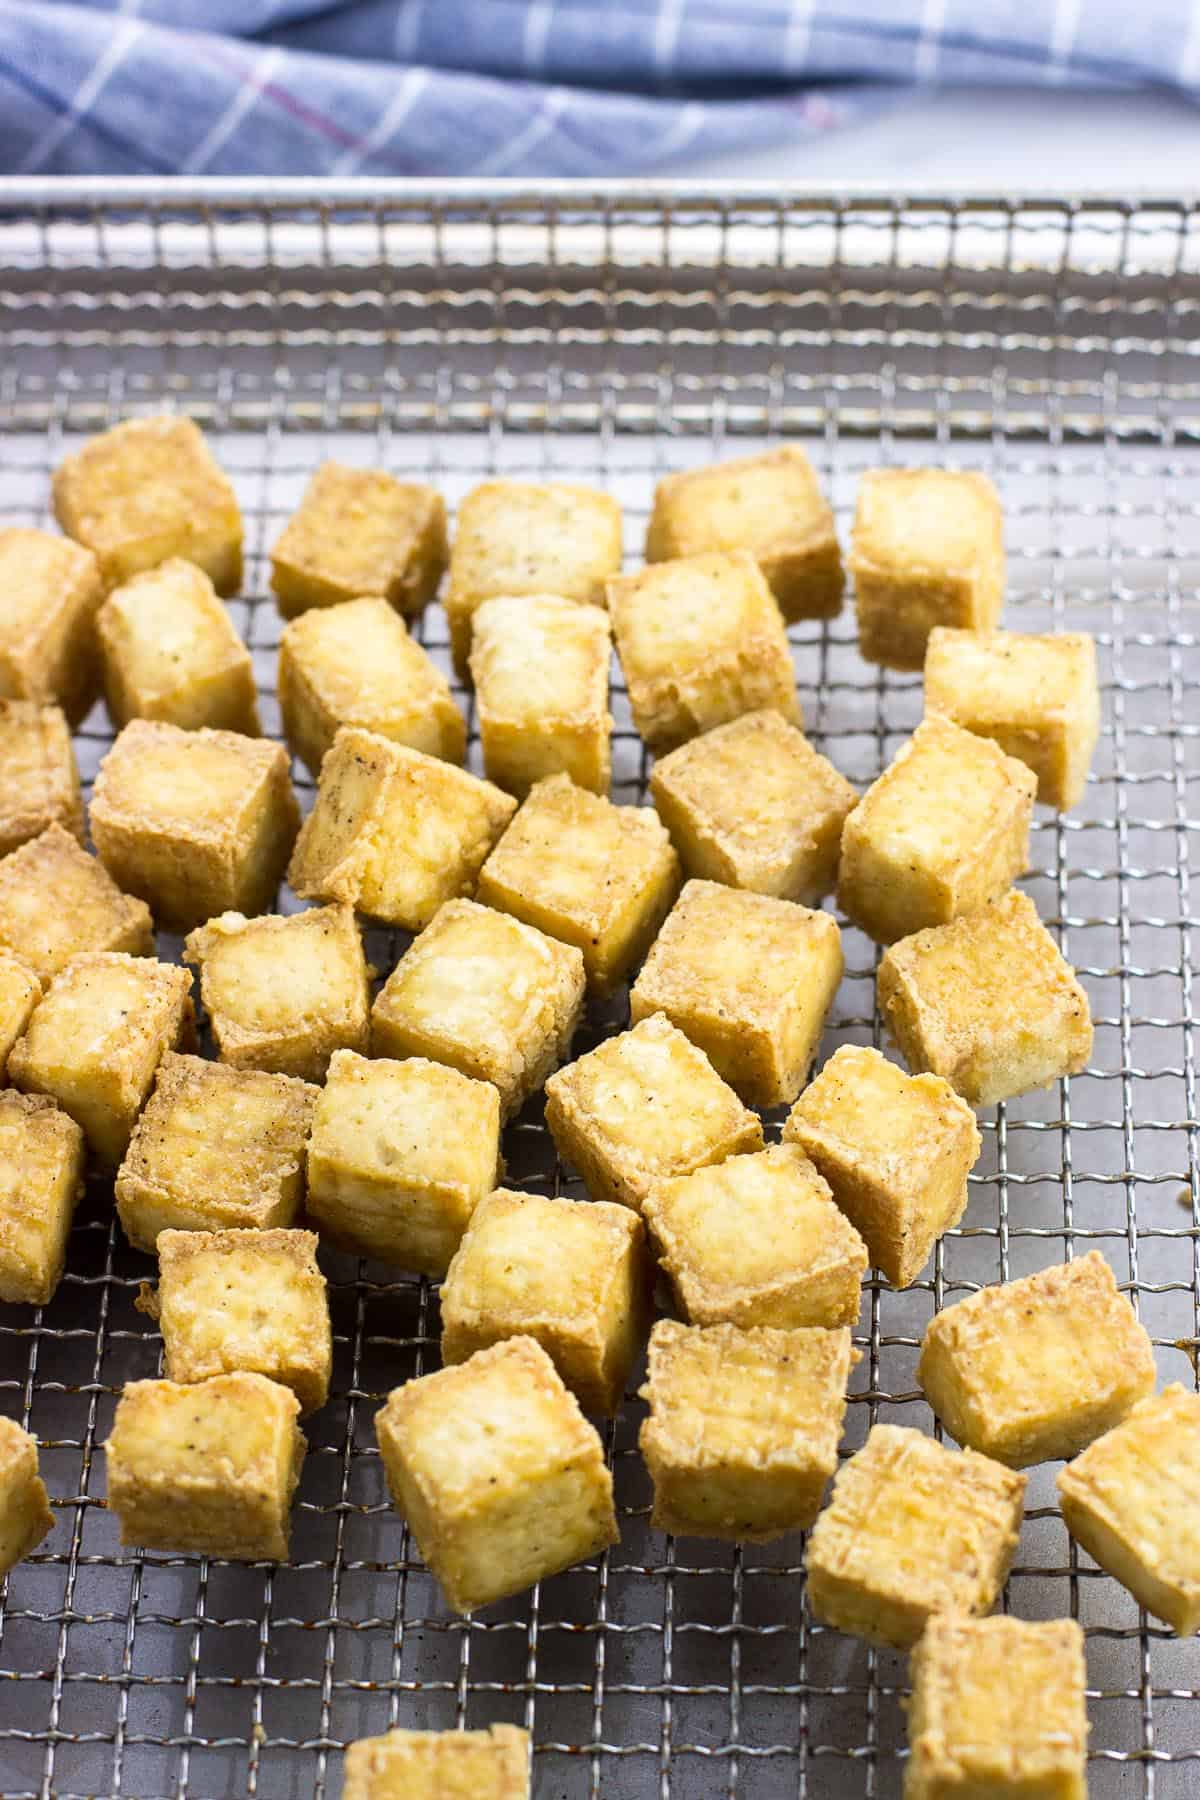 Air fried tofu cubes on a metal air fryer basket